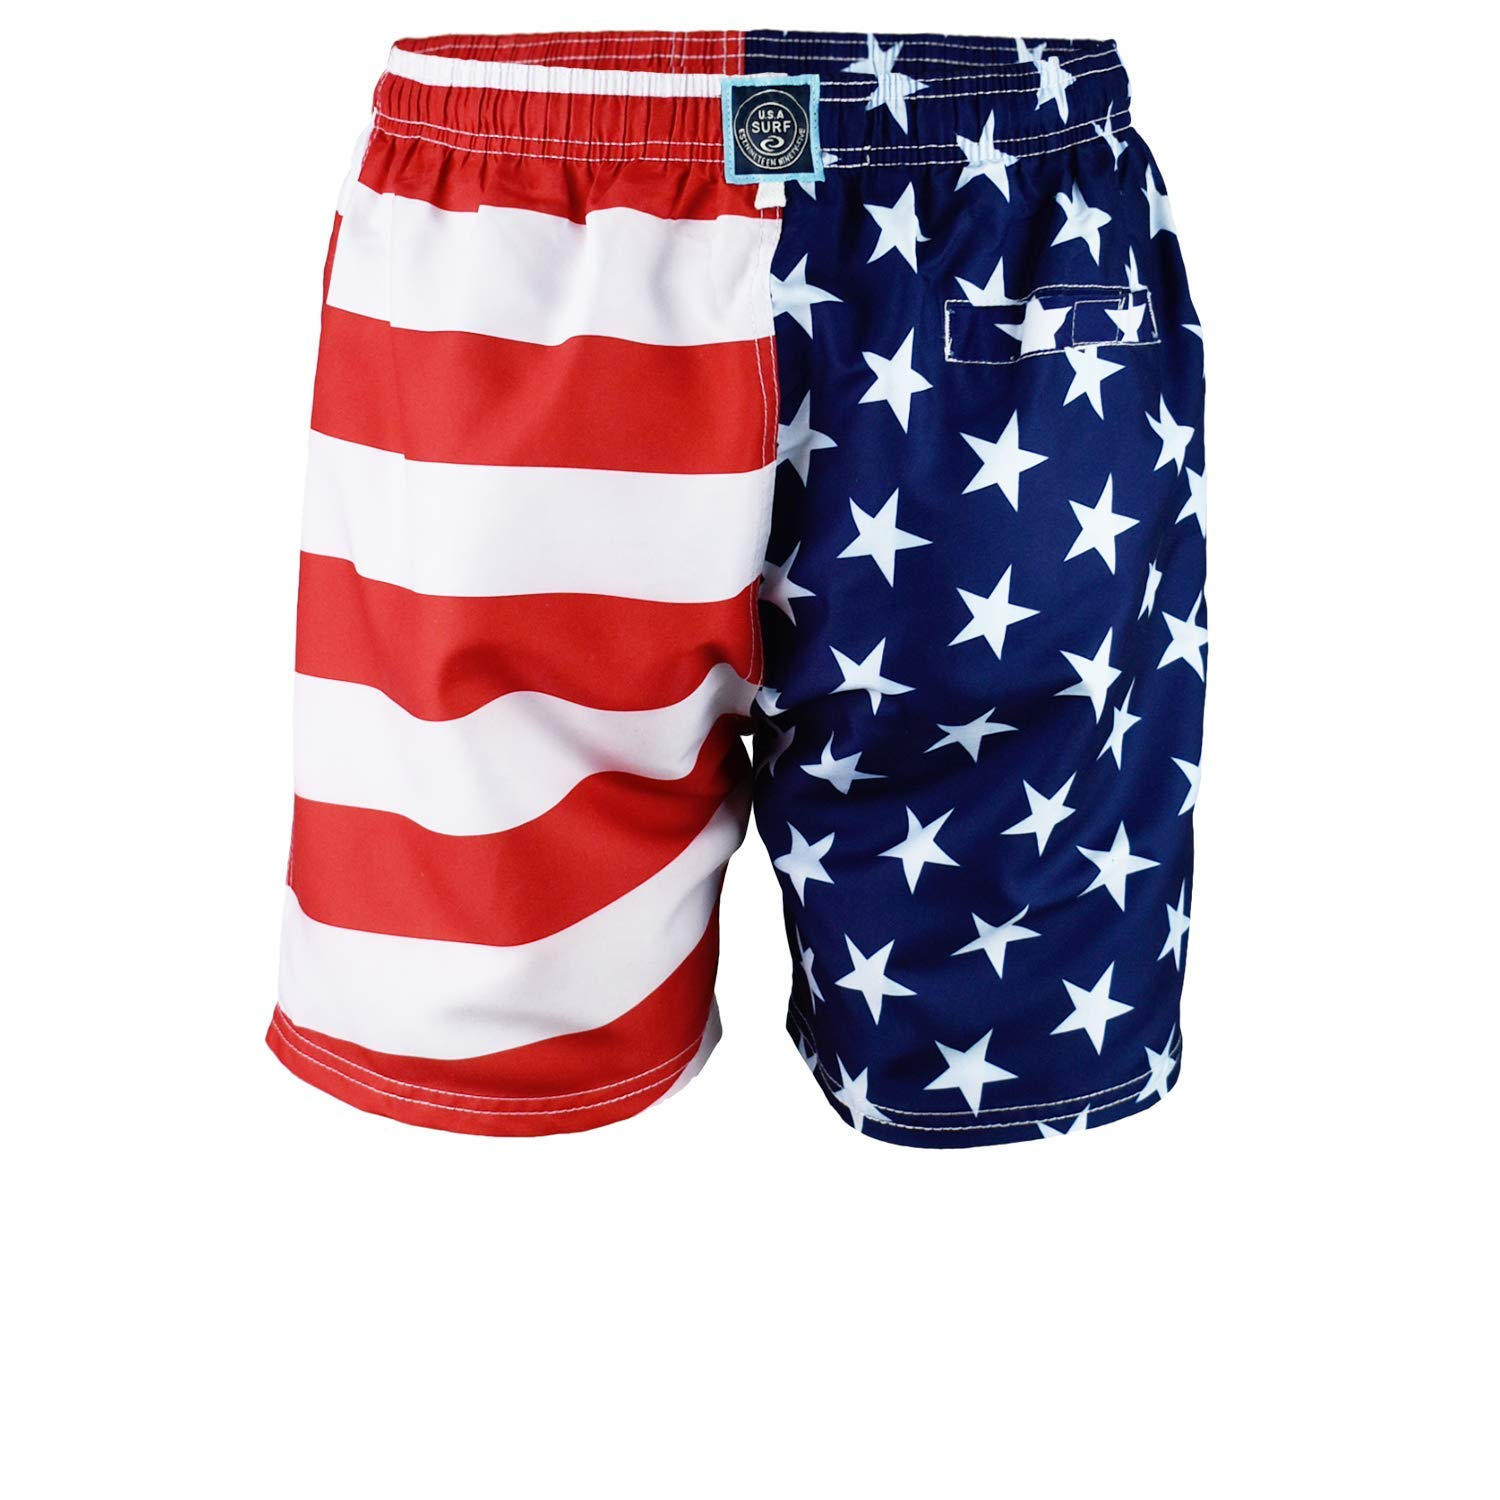 6d5551a87f Exist Licensed-Mart Men's Patriotic USA American Flag Stripes and Stars  Quick Dry Beach Board Shorts Swim Trunks | Amazon.com